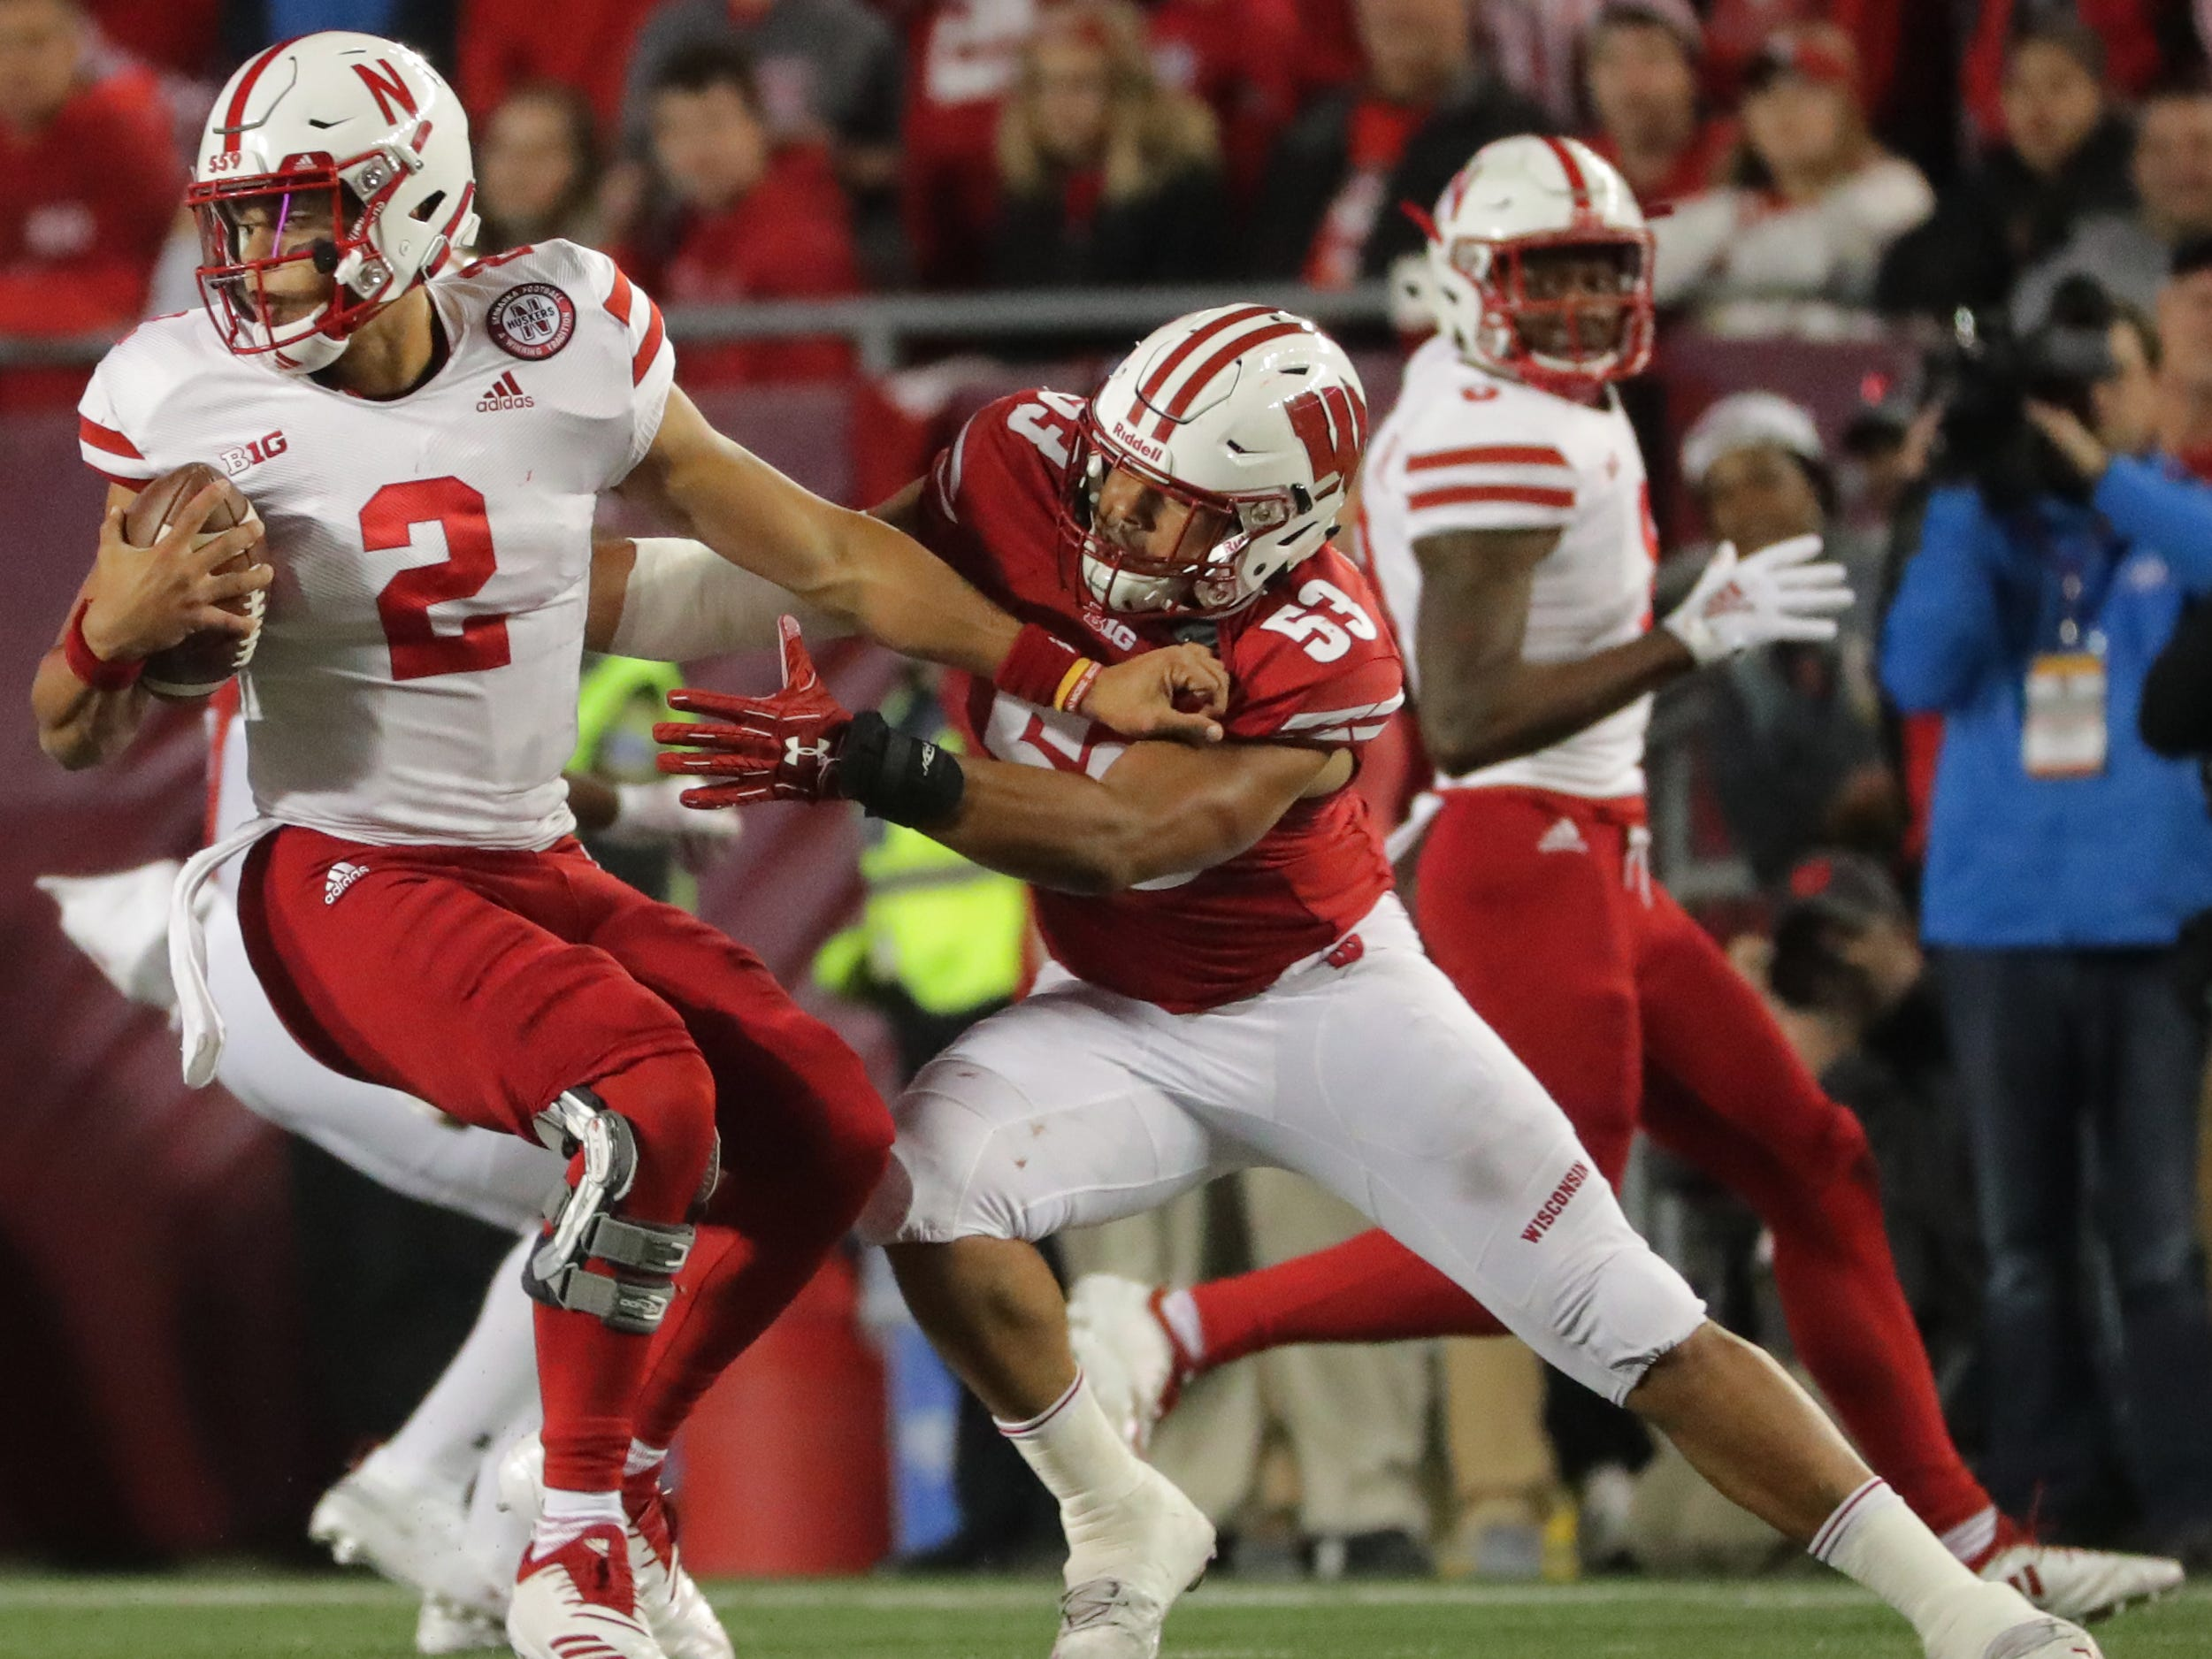 UW linebacker T.J. Edwards is able to get a hold of Nebraska quarterback Adrian Martinez for a sack during the second quarter on Saturday night at Camp Randall Stadium.